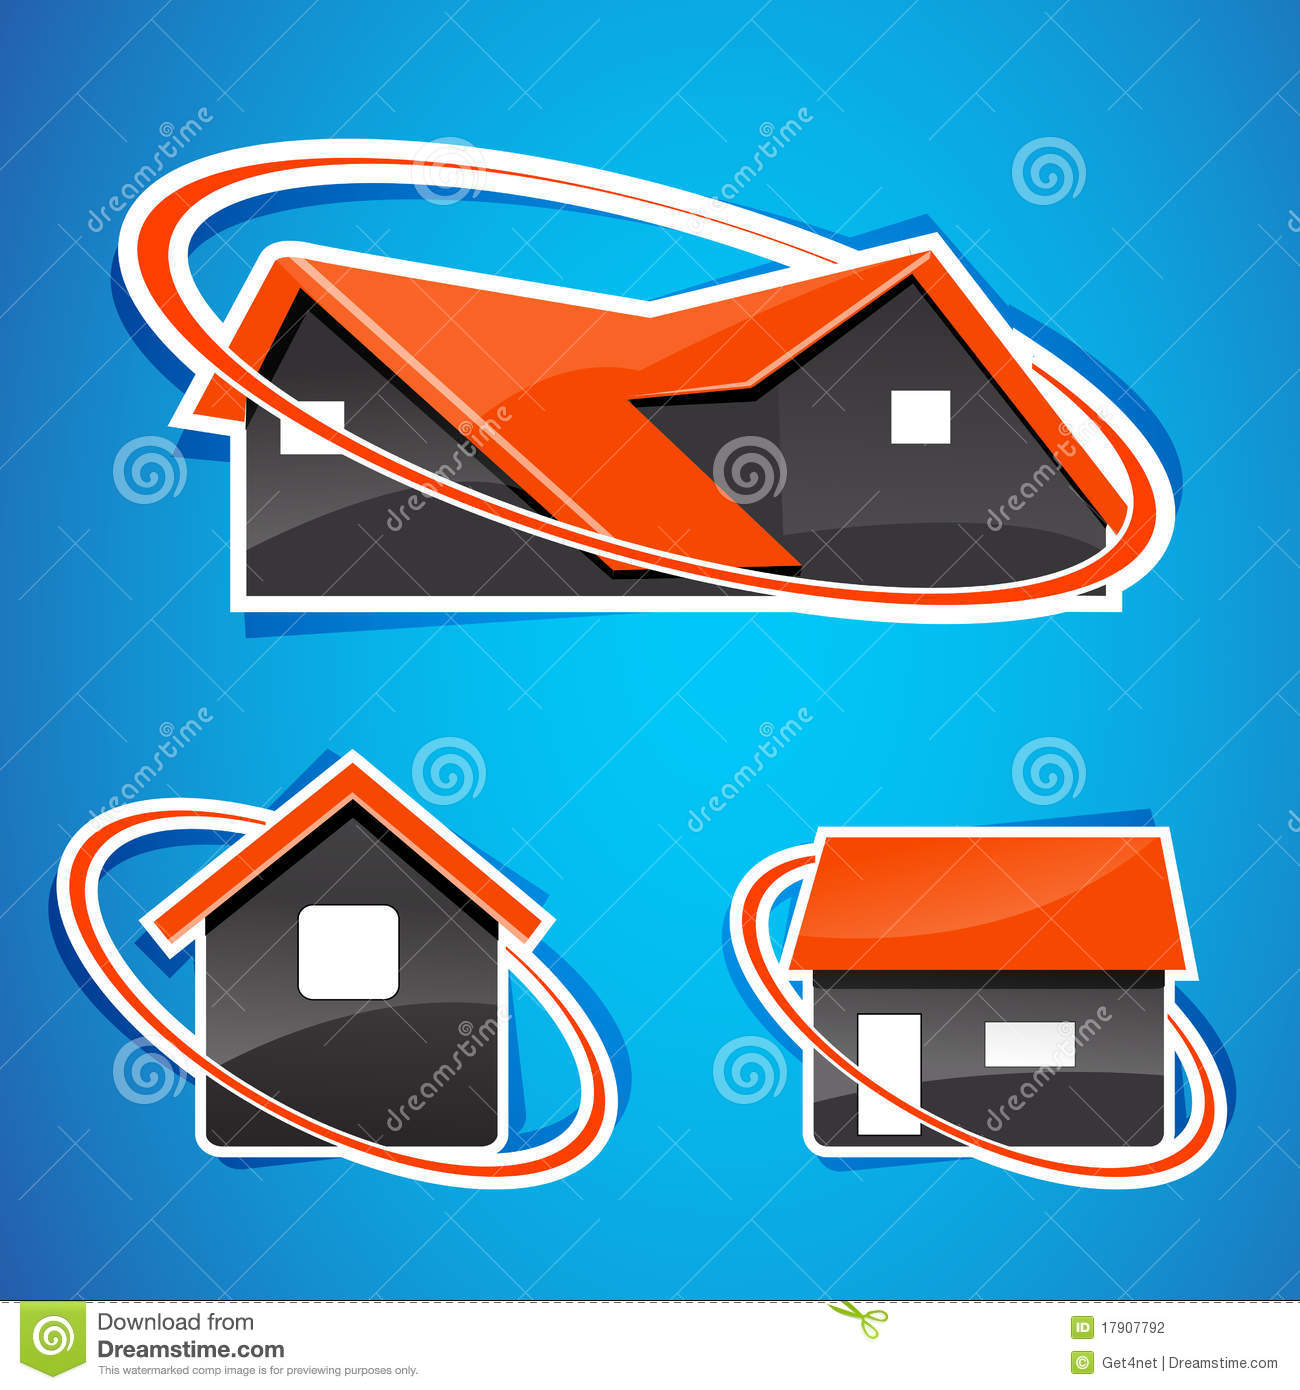 Different shapes of homes stock photography image 17907792 for Different shapes of houses